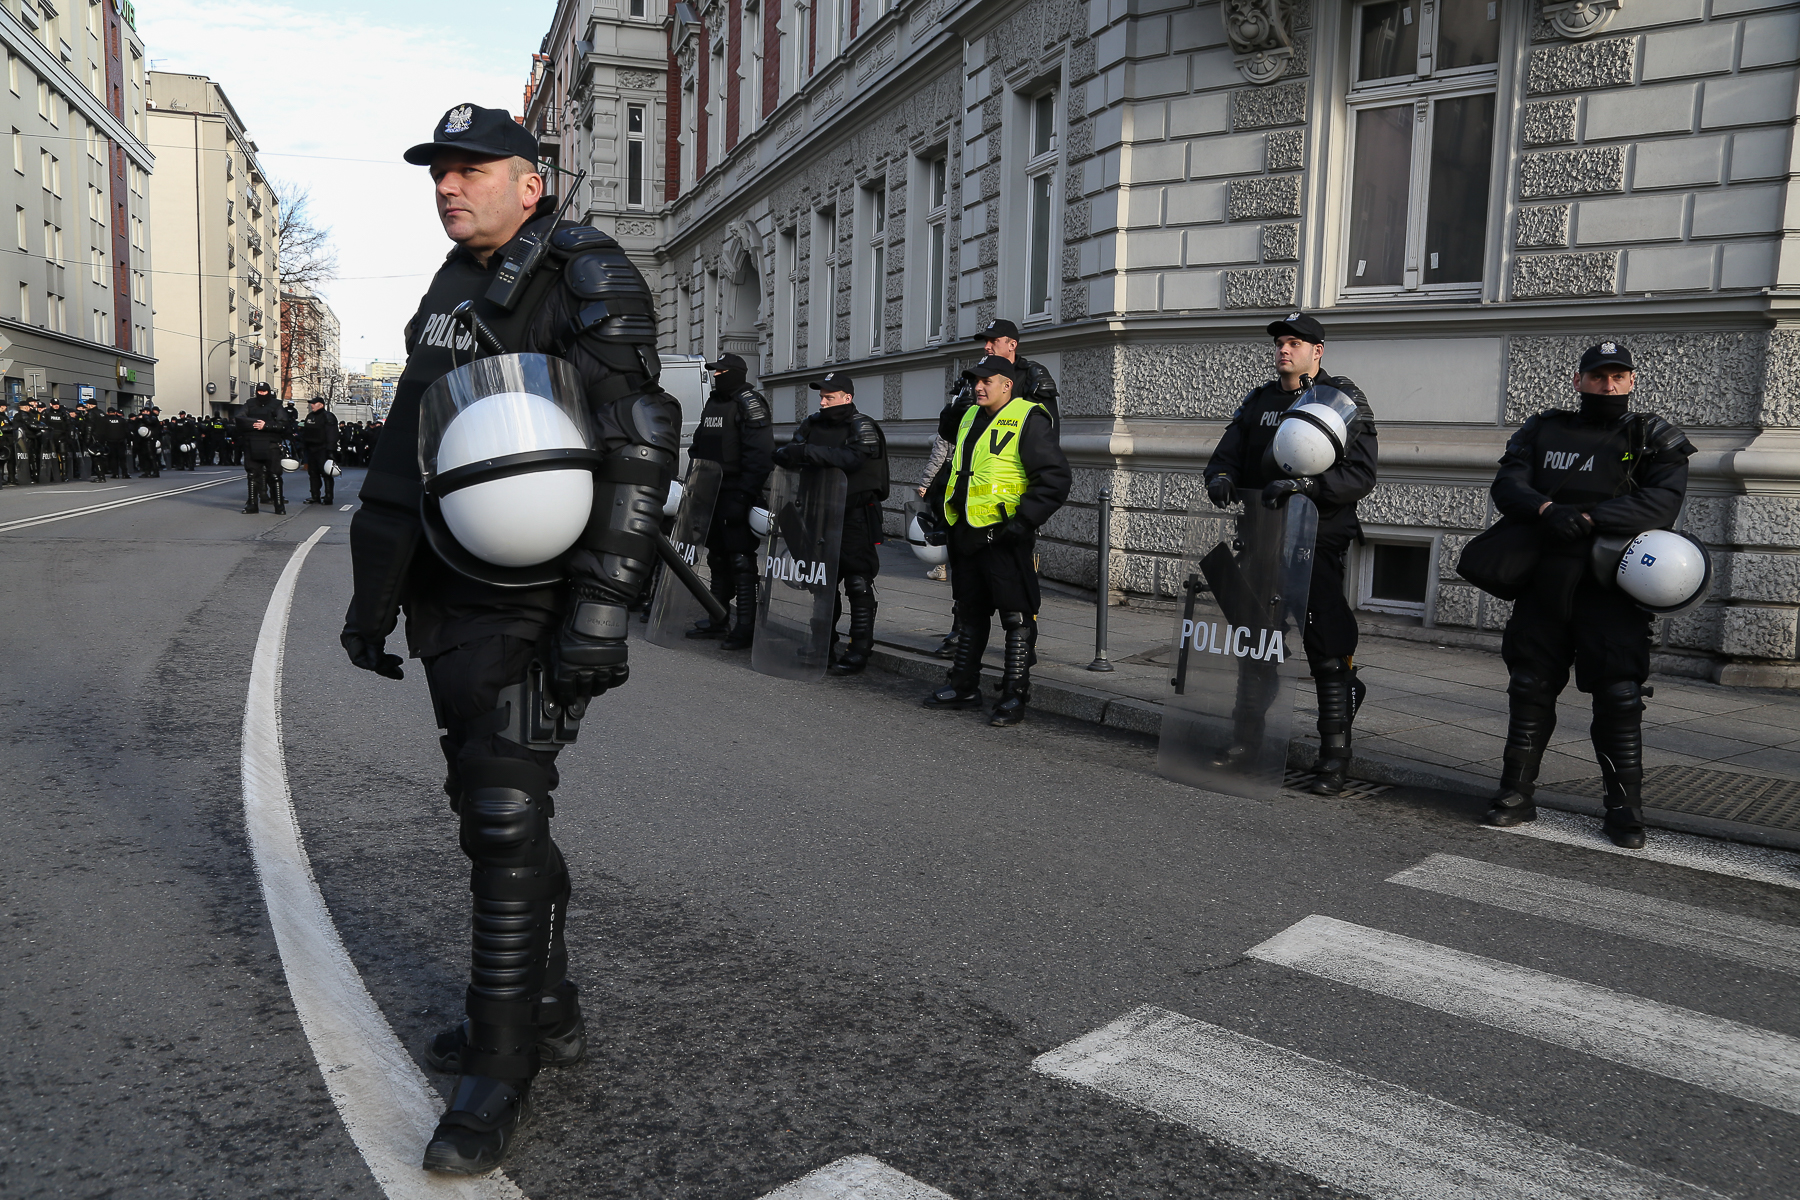 Gioia_Kuss_Portraits from Poland_-Police in Formation1.jpg